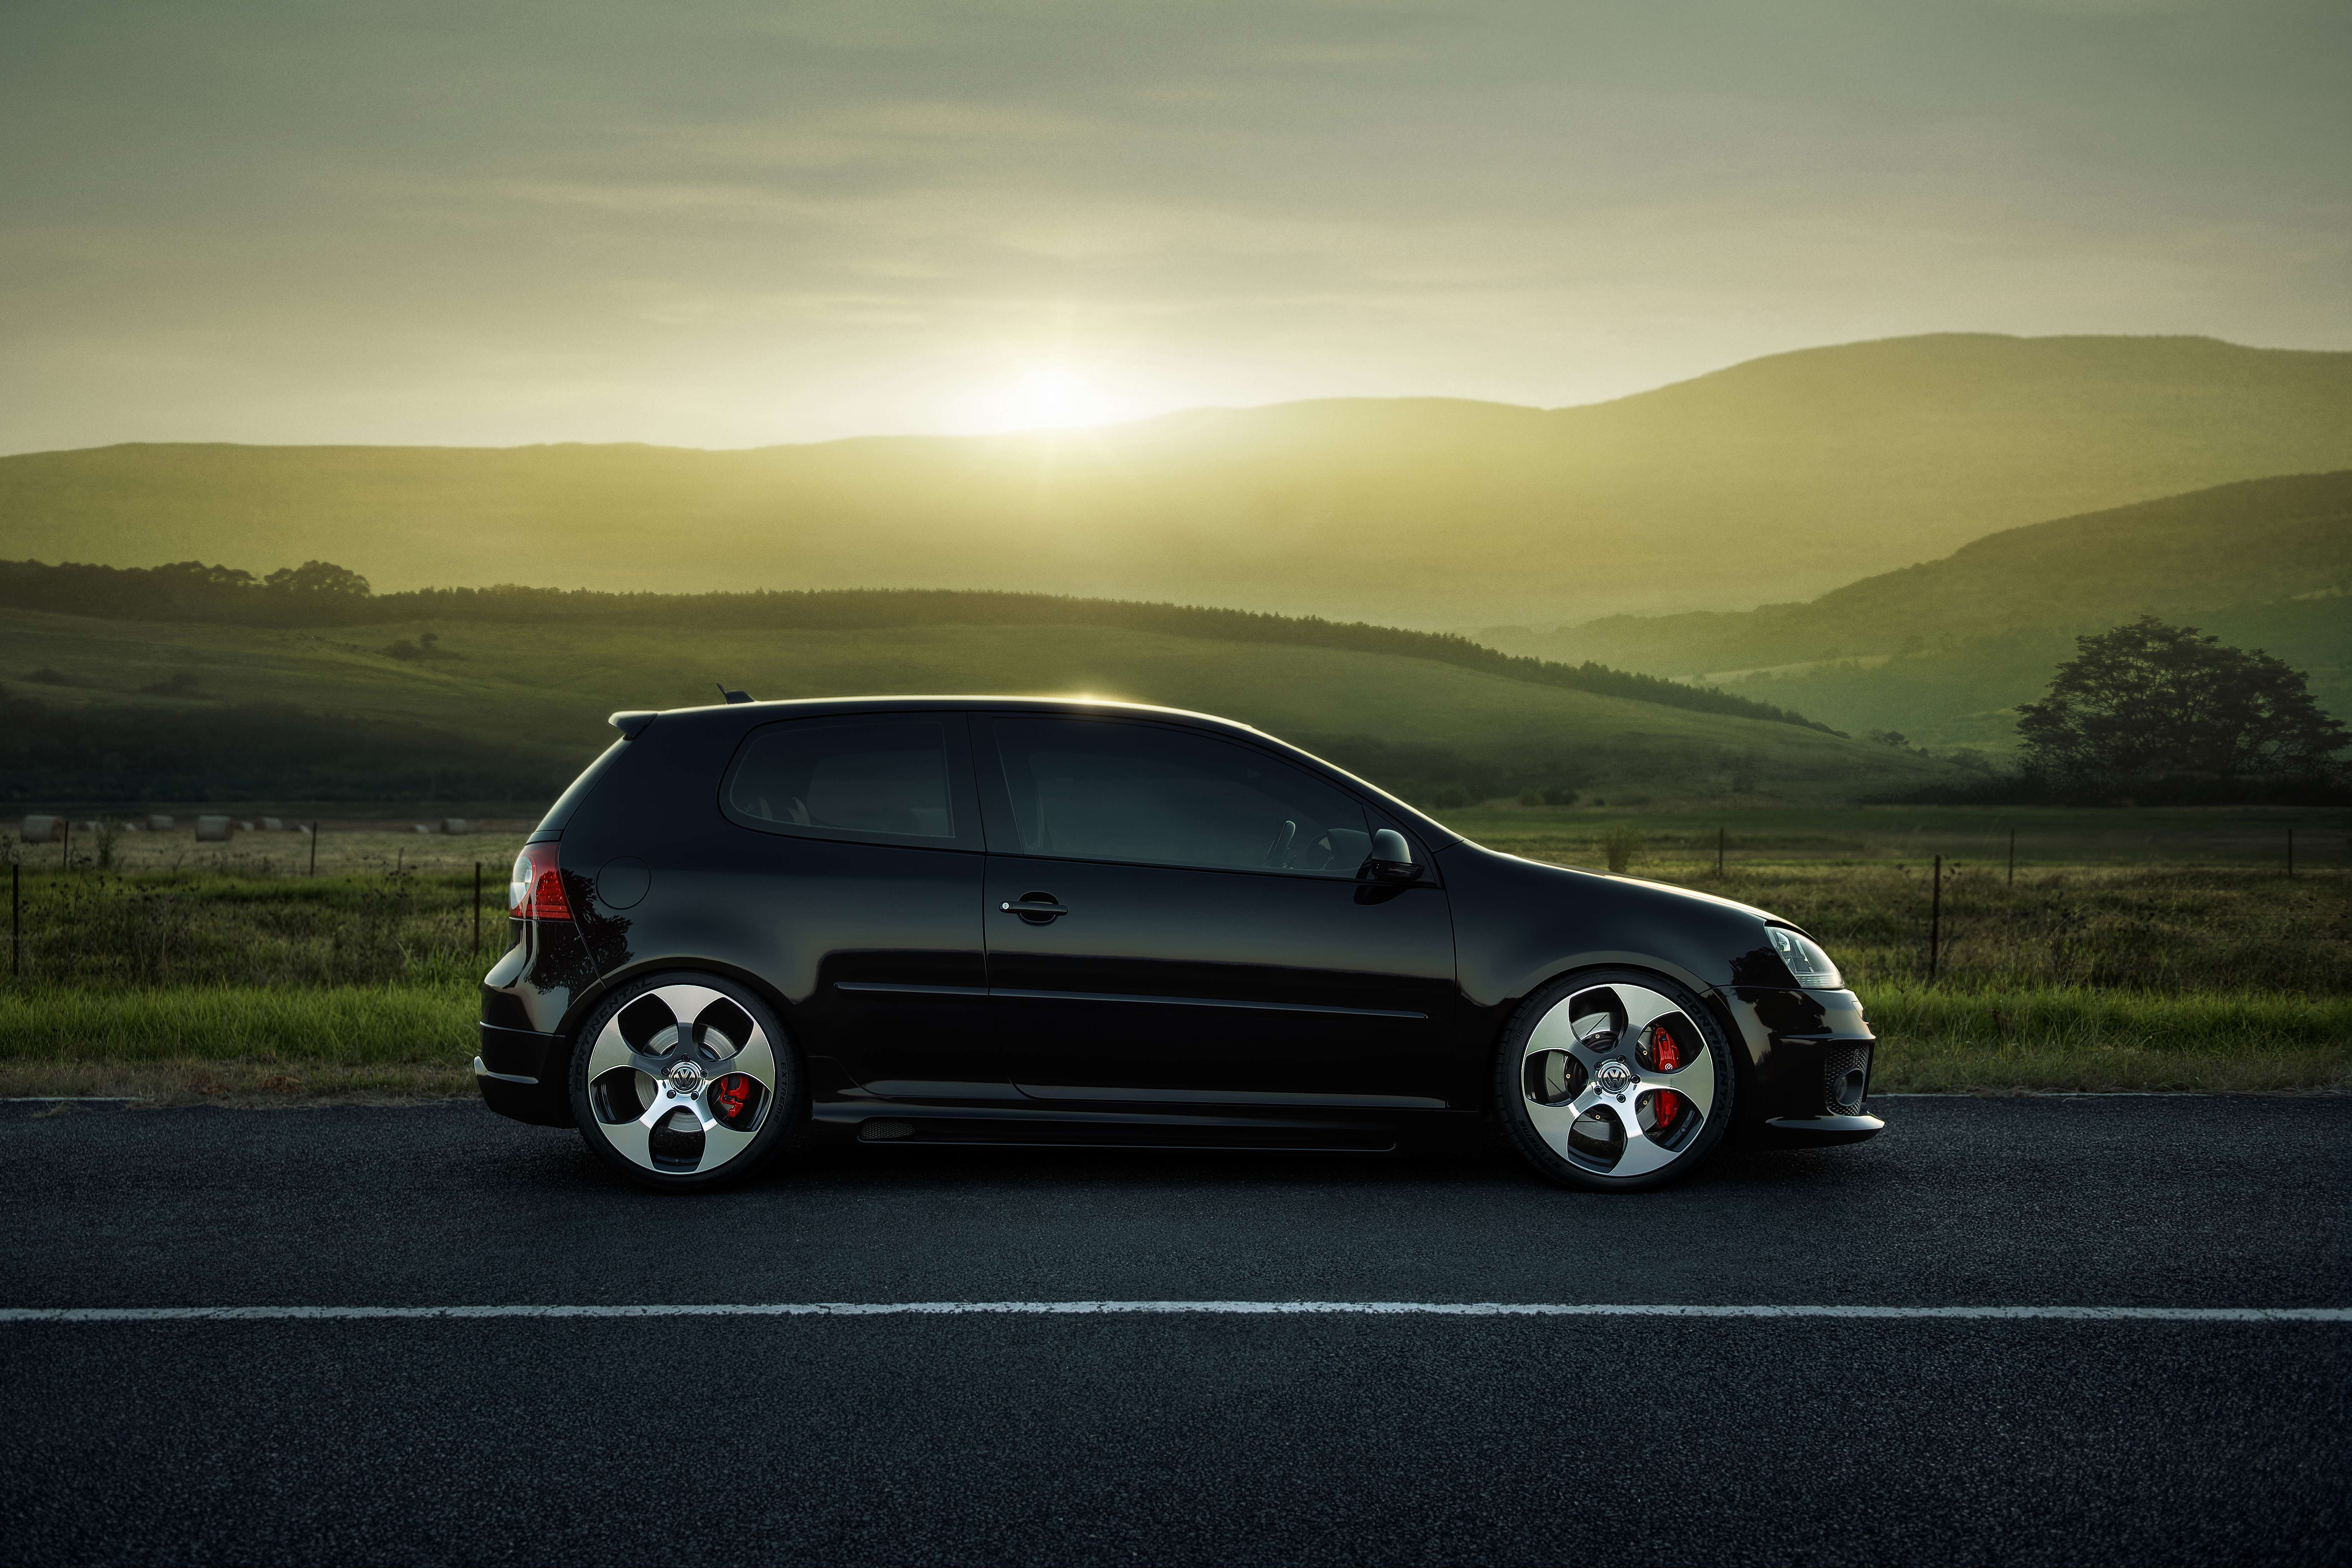 View Of Golf Gti Hd Wallpapers Hd Car Wallpapers